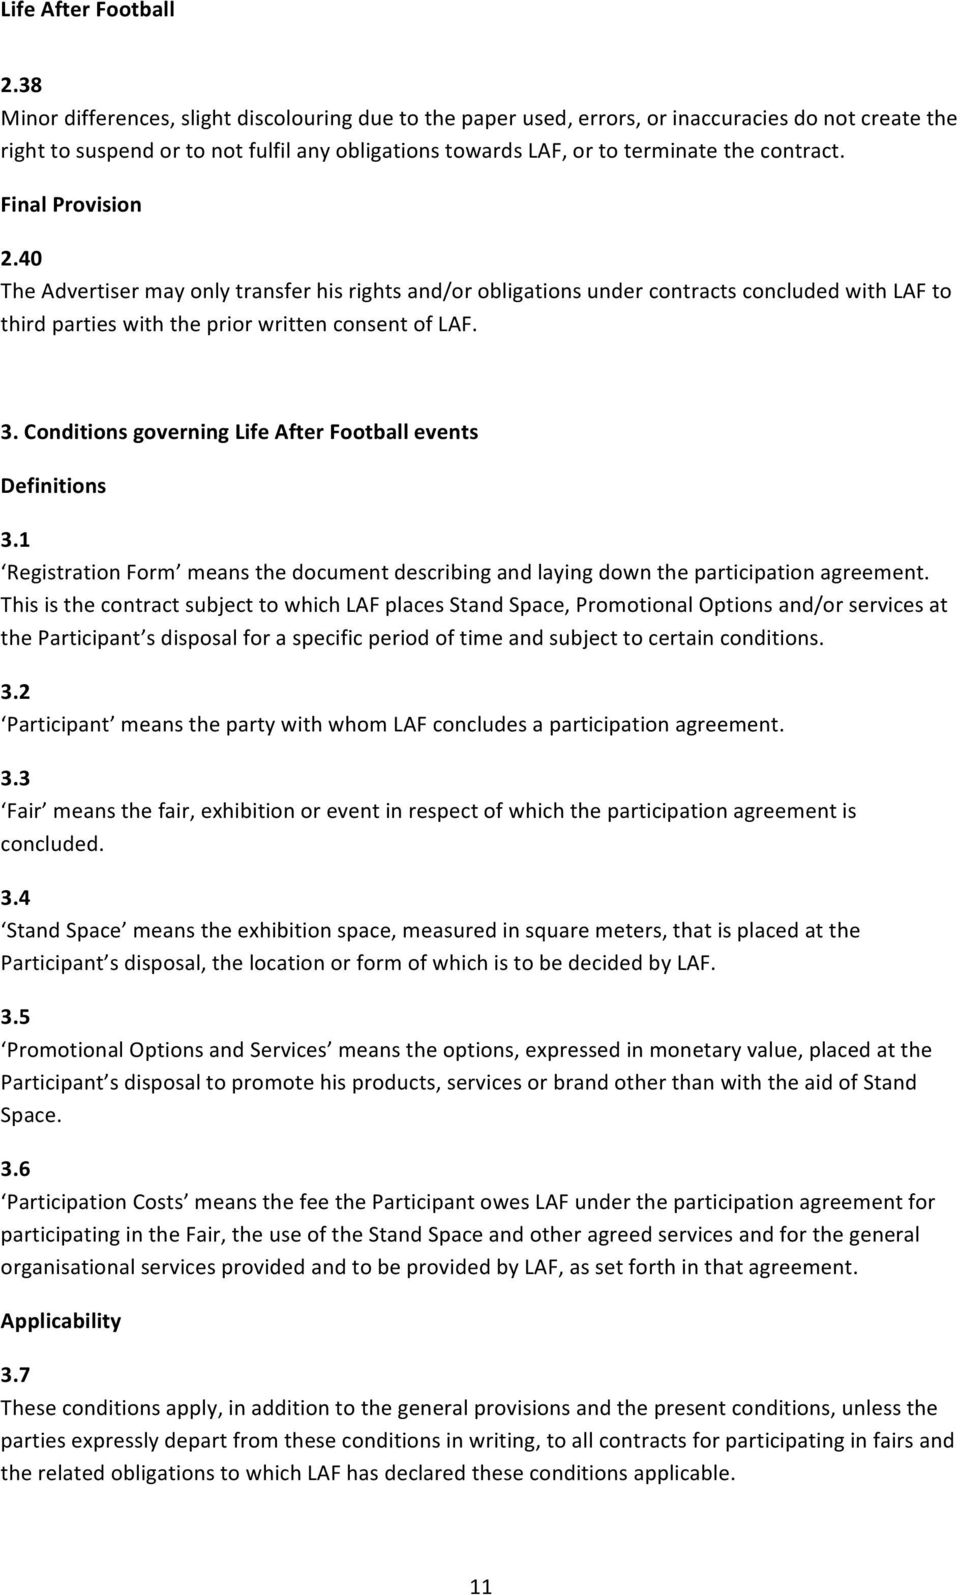 Conditions governing Life After Football events Definitions 3.1 Registration Form means the document describing and laying down the participation agreement.